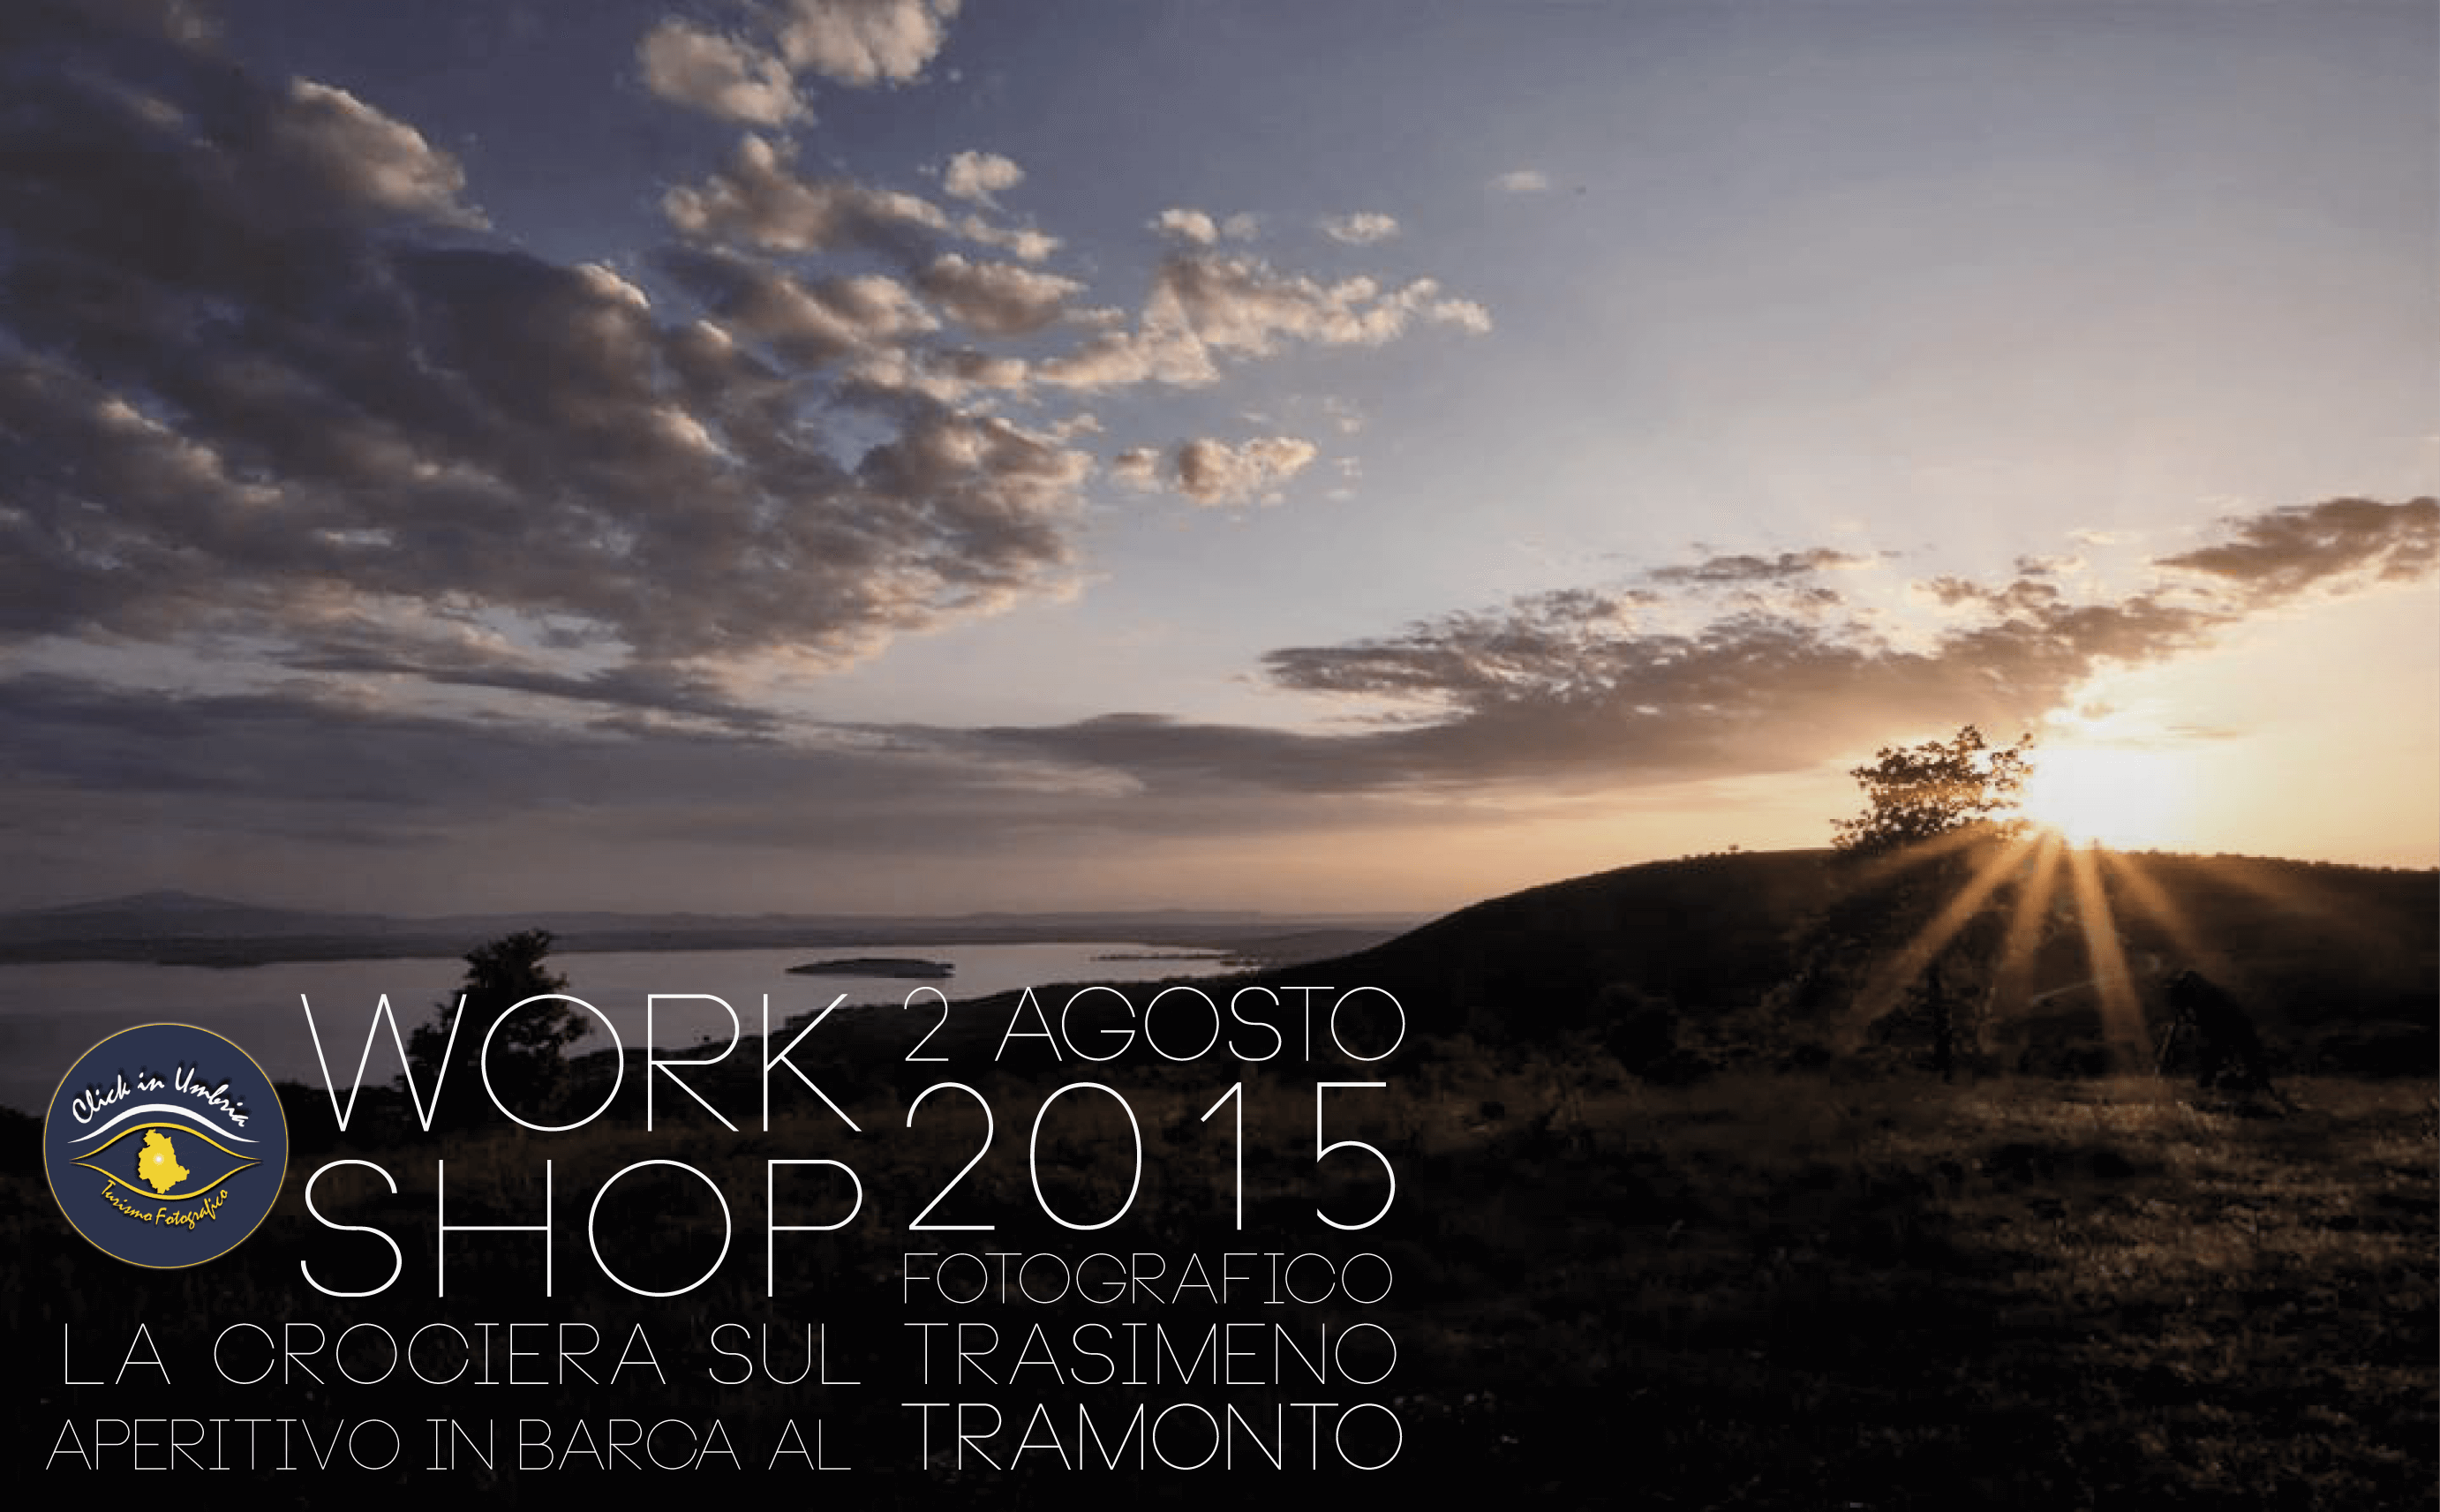 WORKSHOP FOTOGRAFICO IN CROCIERA SUL LAGO TRASIMENO